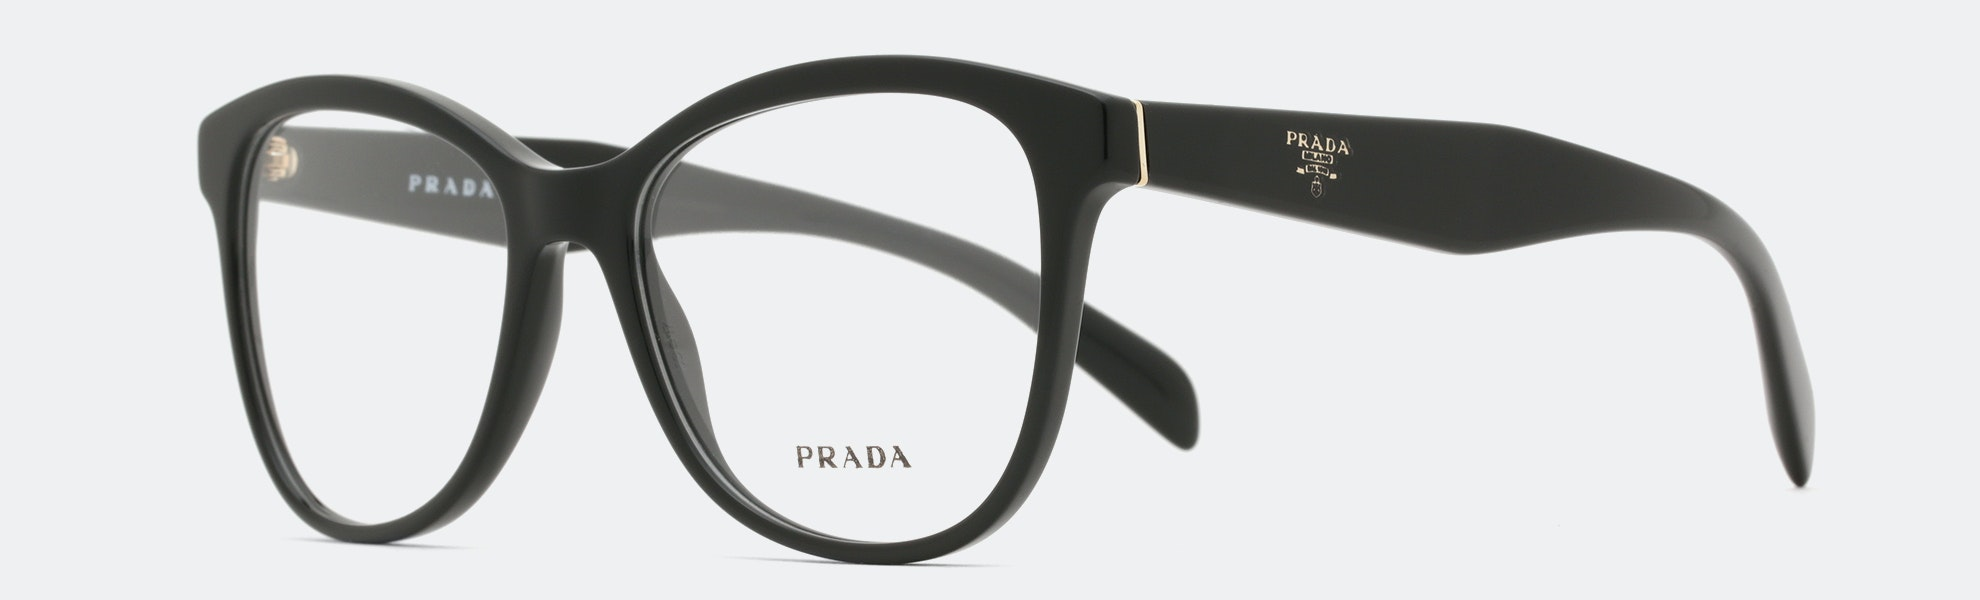 Prada 12TV Eyeglasses